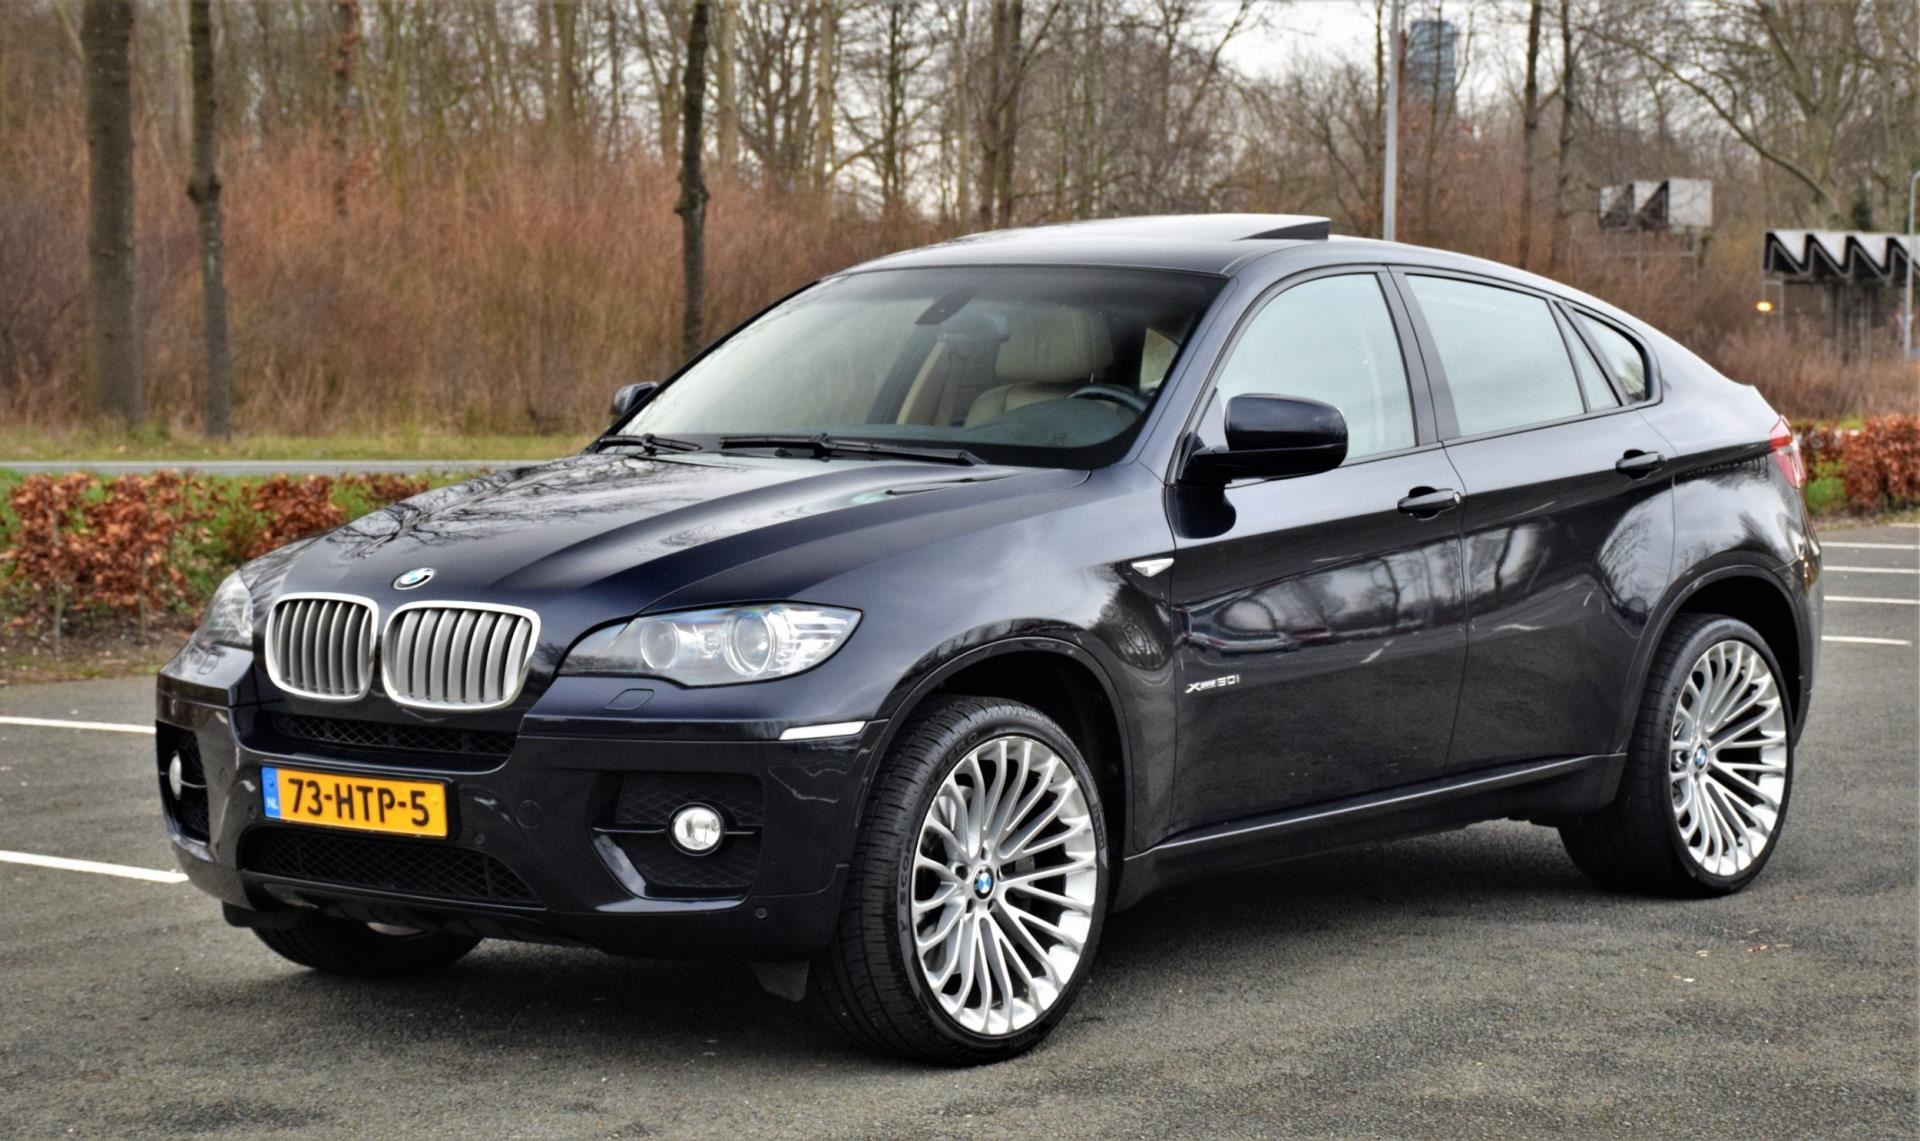 BMW X6 occasion - Used Car Store Almere